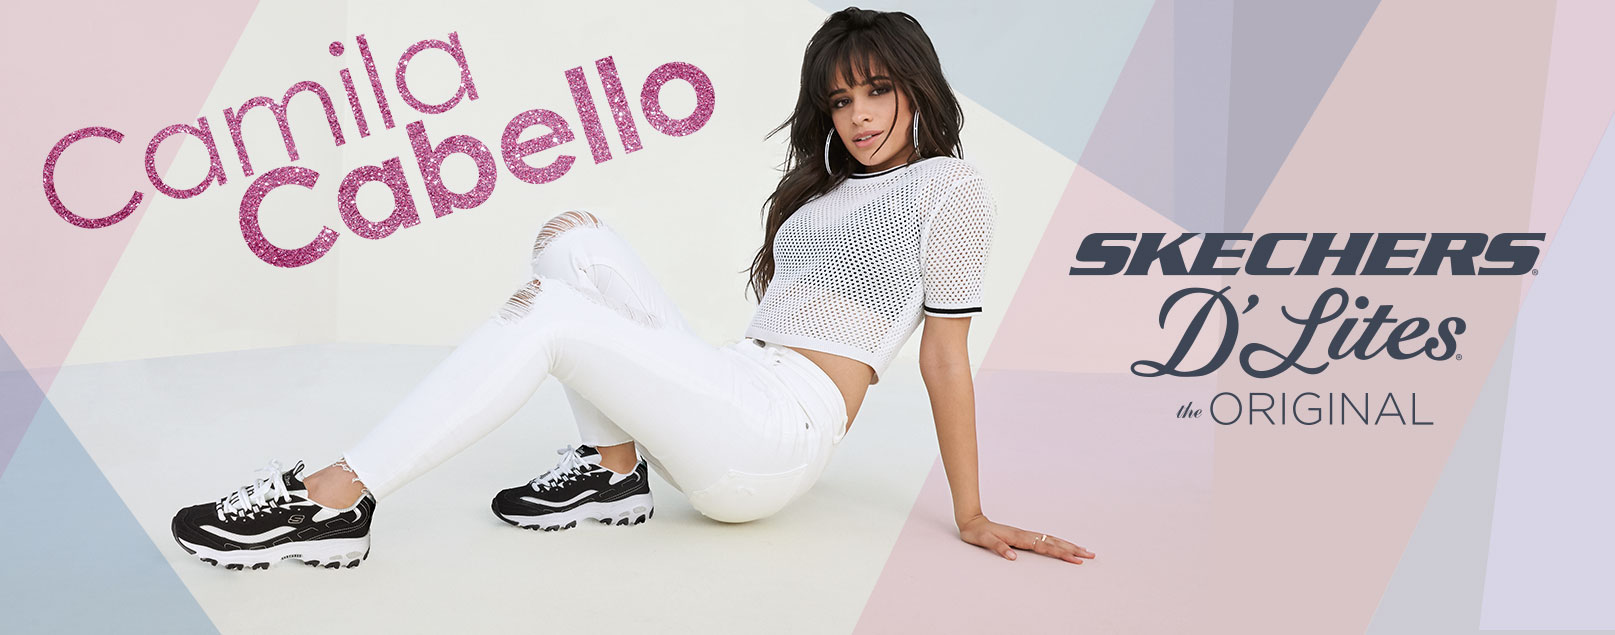 Camila Cabello in SKECHERS D'Lites